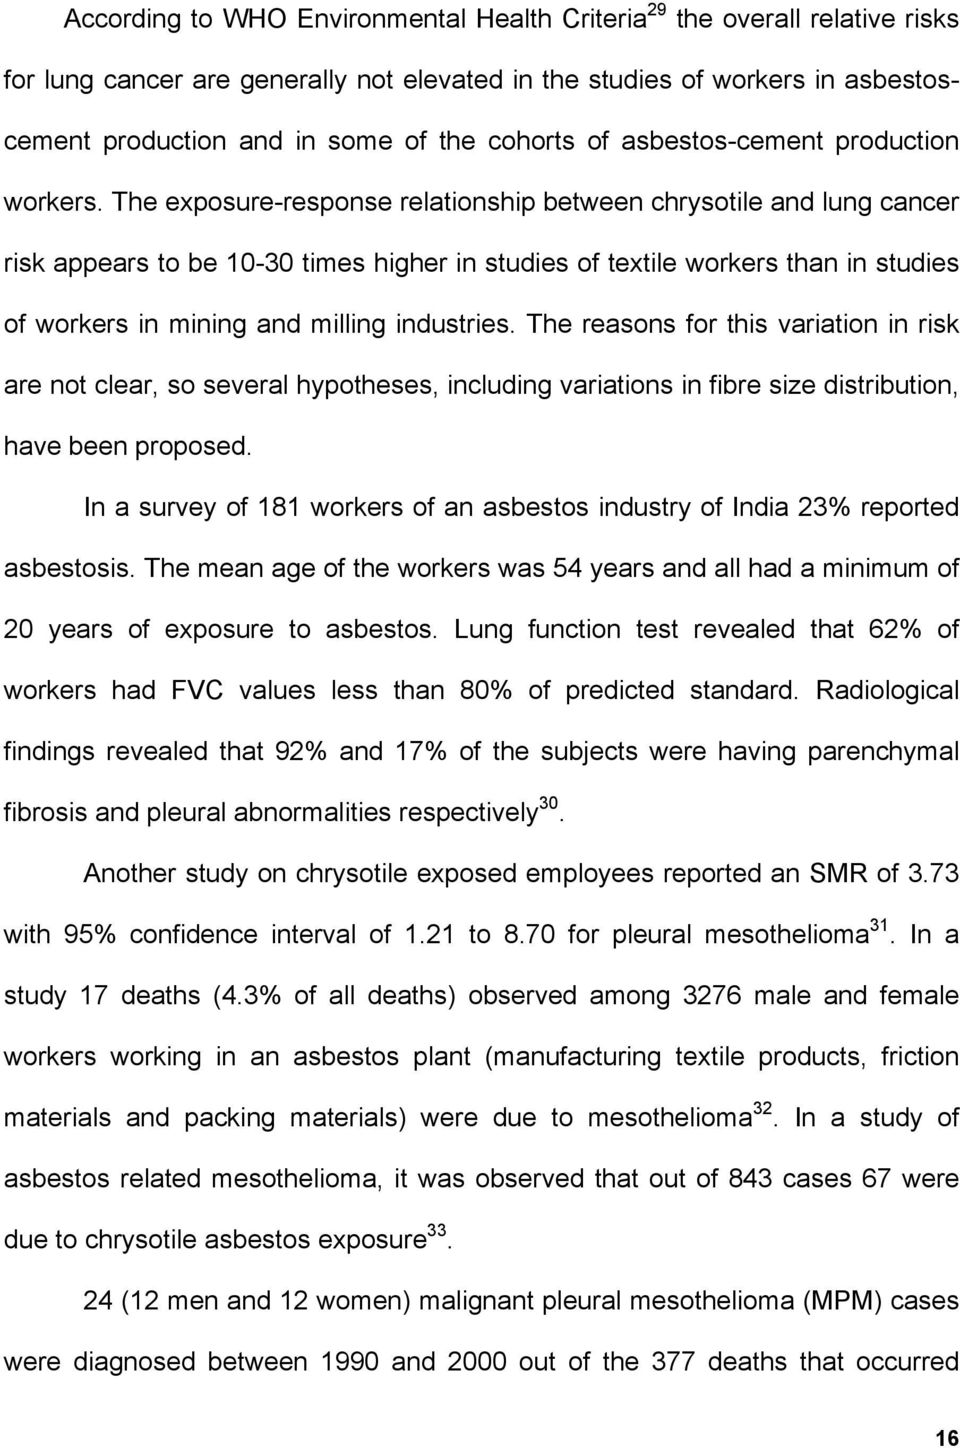 The exposure-response relationship between chrysotile and lung cancer risk appears to be 10-30 times higher in studies of textile workers than in studies of workers in mining and milling industries.